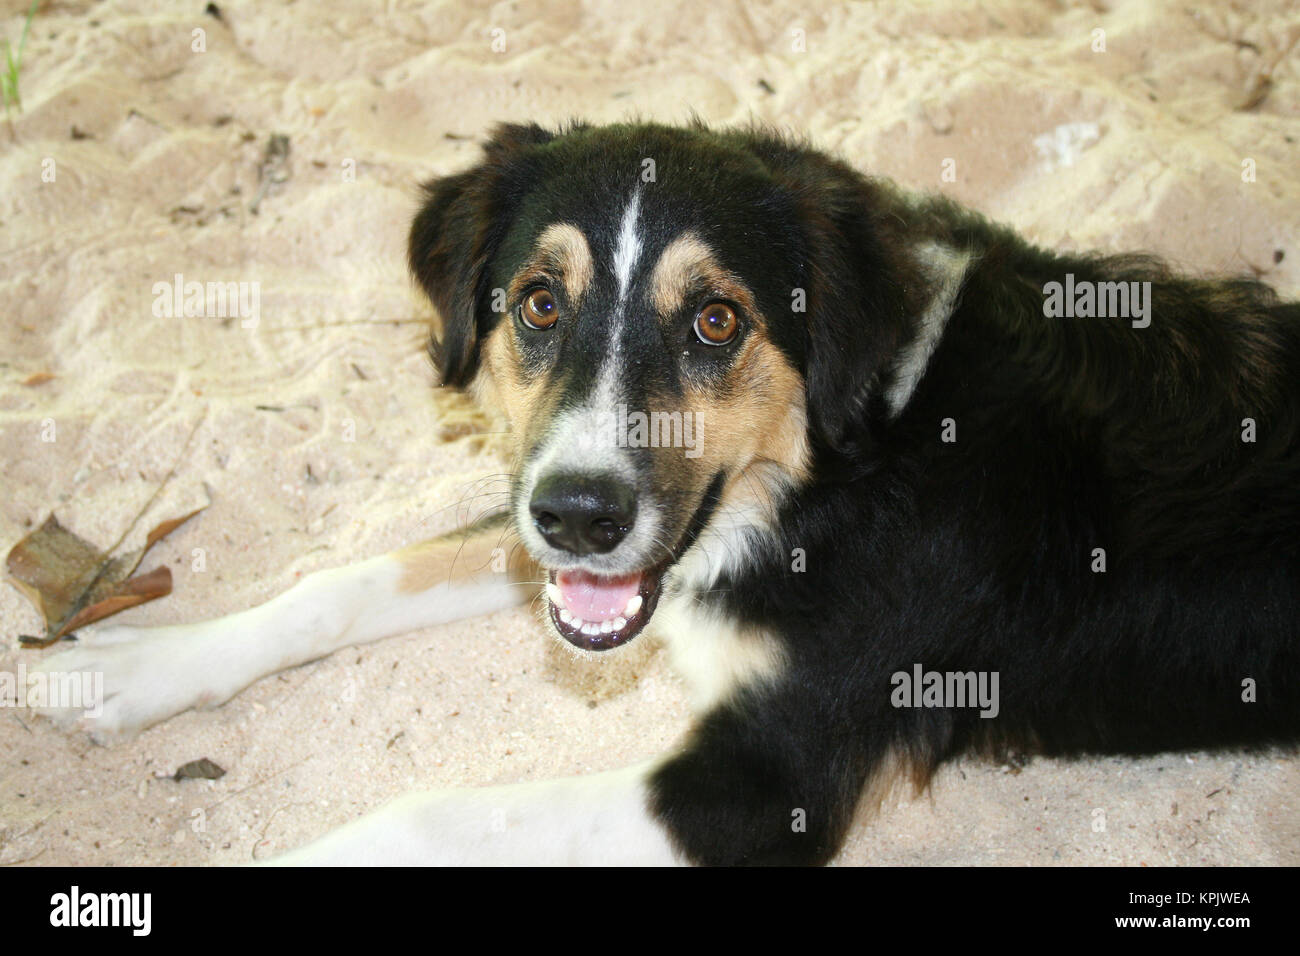 Crossbred domestic dog laying in sand, La Digue Island, Seychelles. Stock Photo